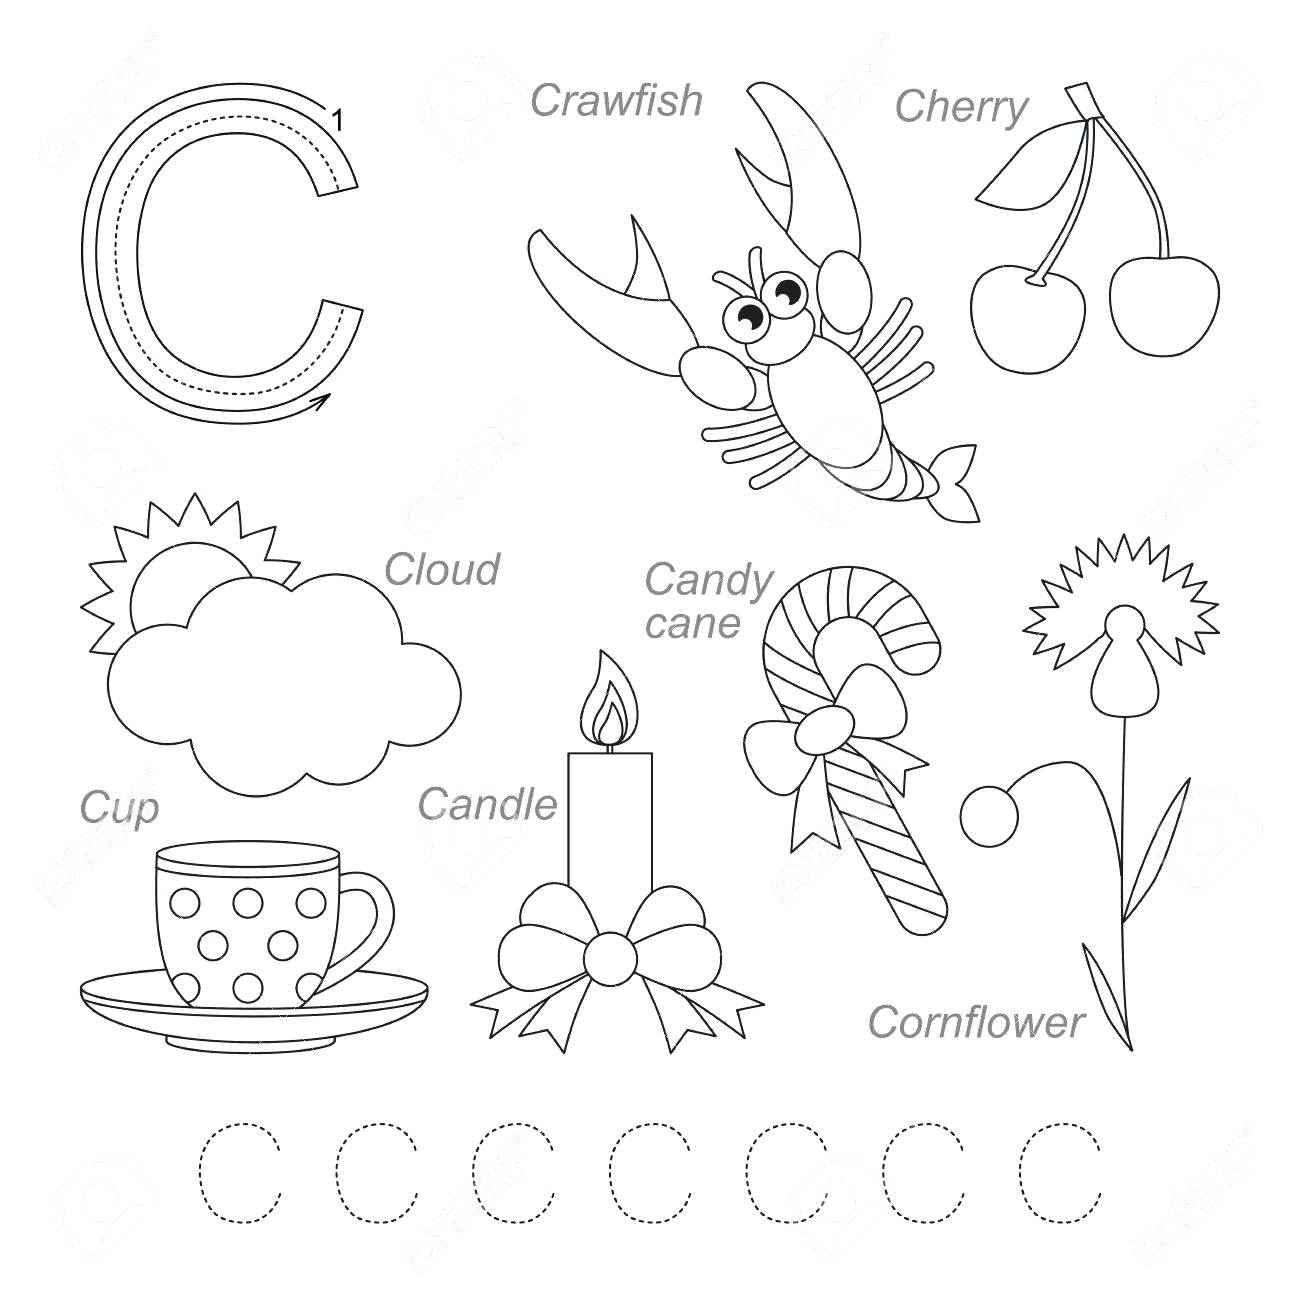 Letter C Worksheets For Learning. Letter C Worksheets - Misc with regard to Letter C Worksheets For Grade 1